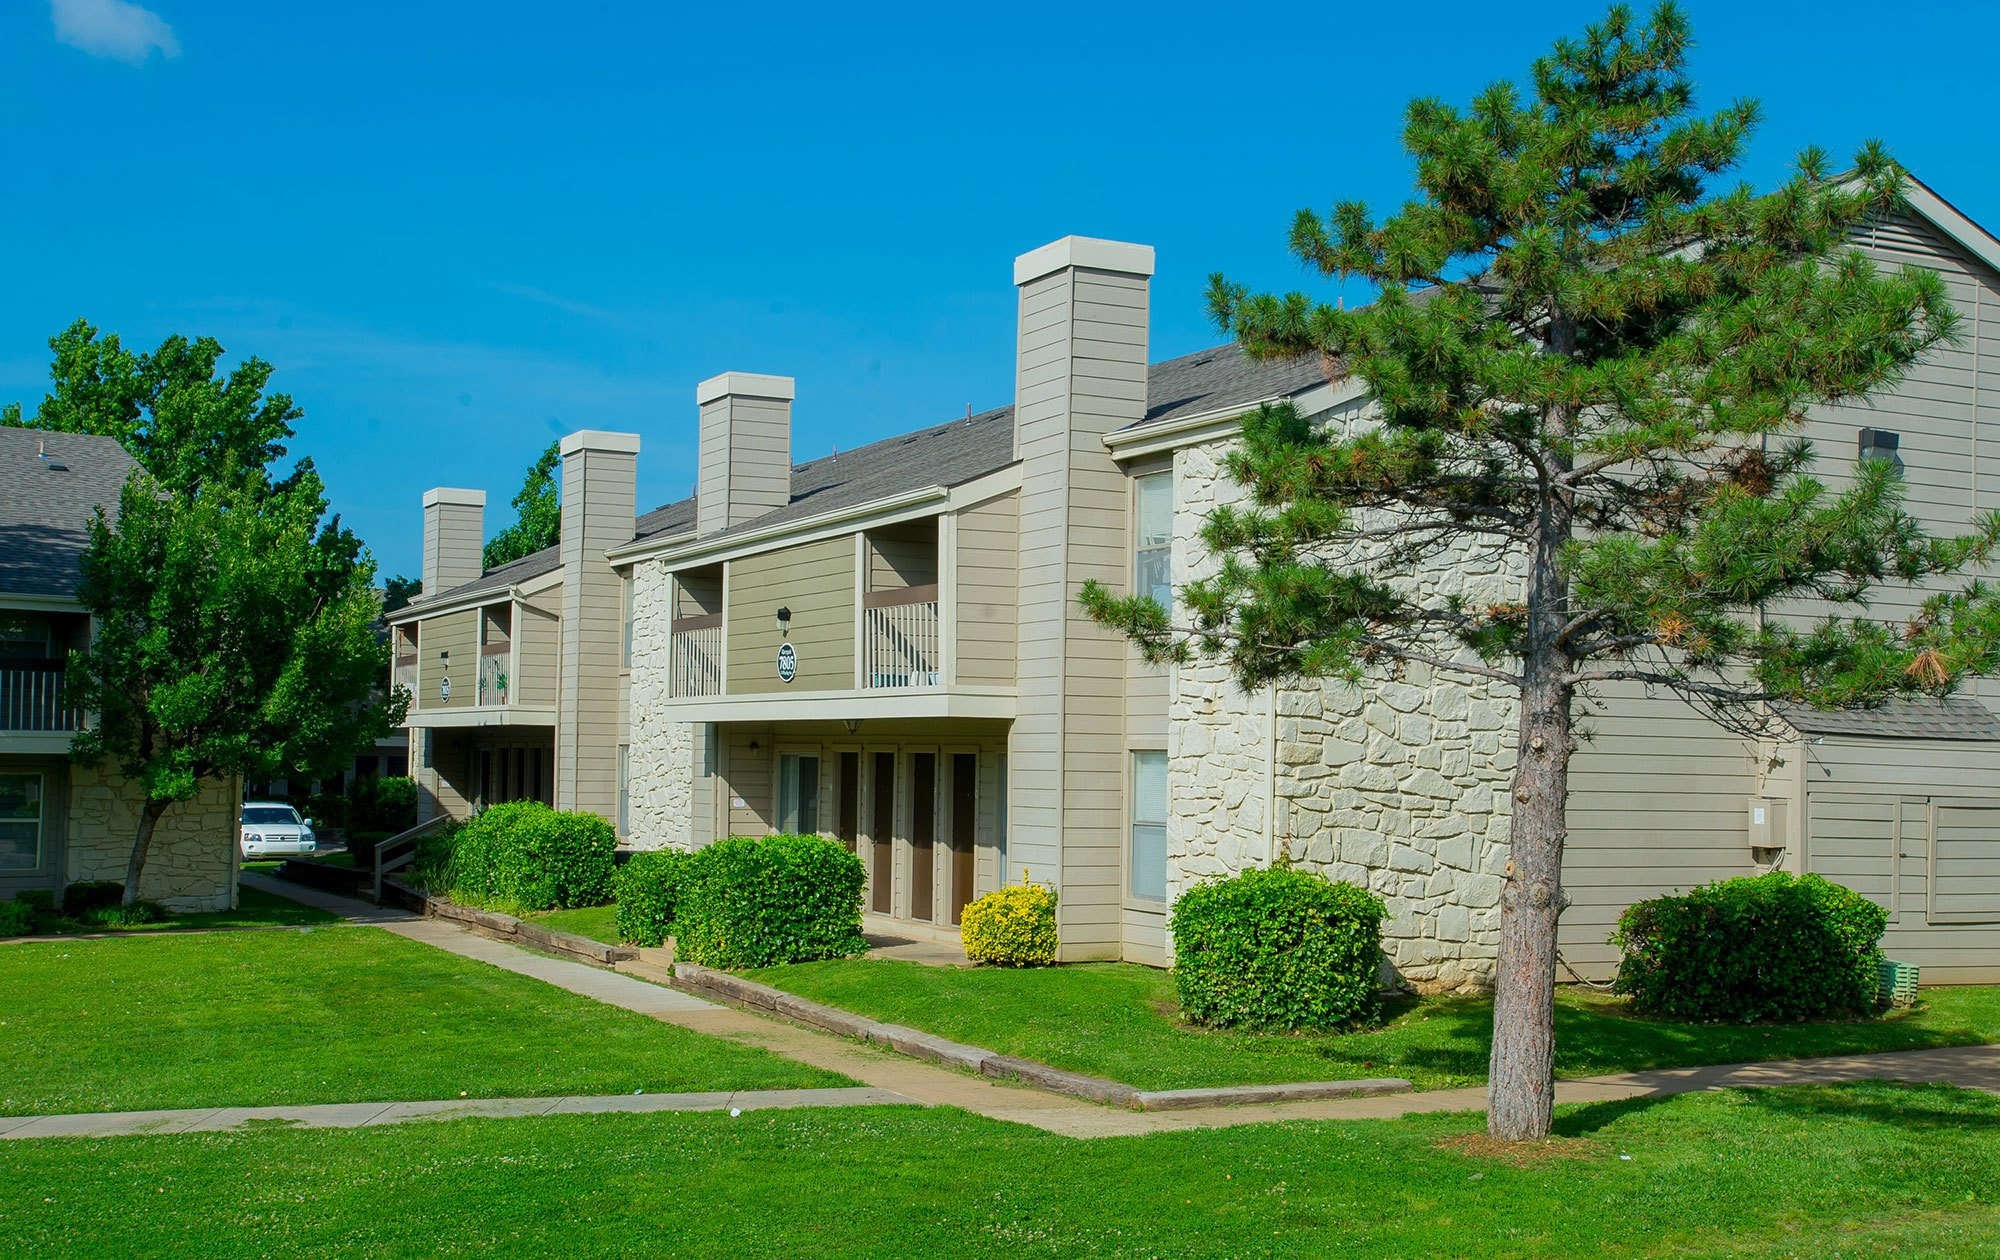 Riverpark apartments in South Tulsa